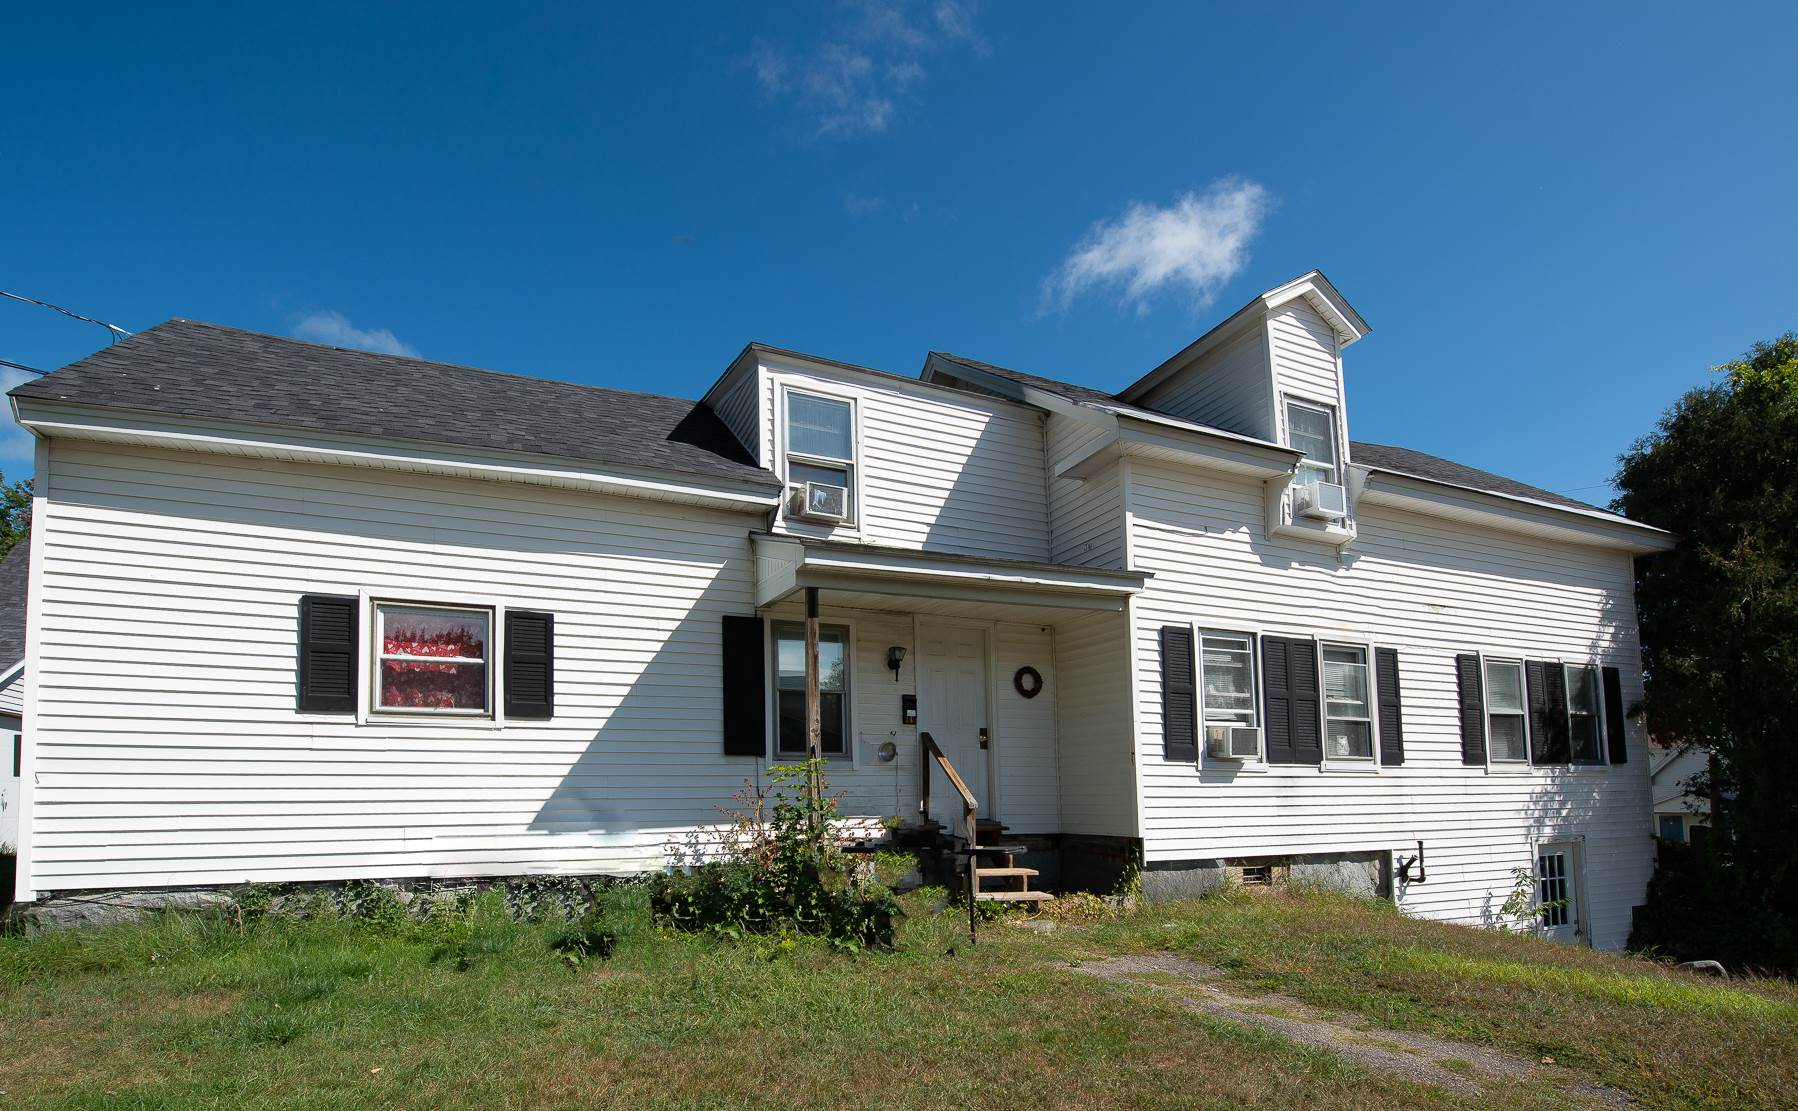 MLS 4830293: 14 Winter Street, Plymouth NH